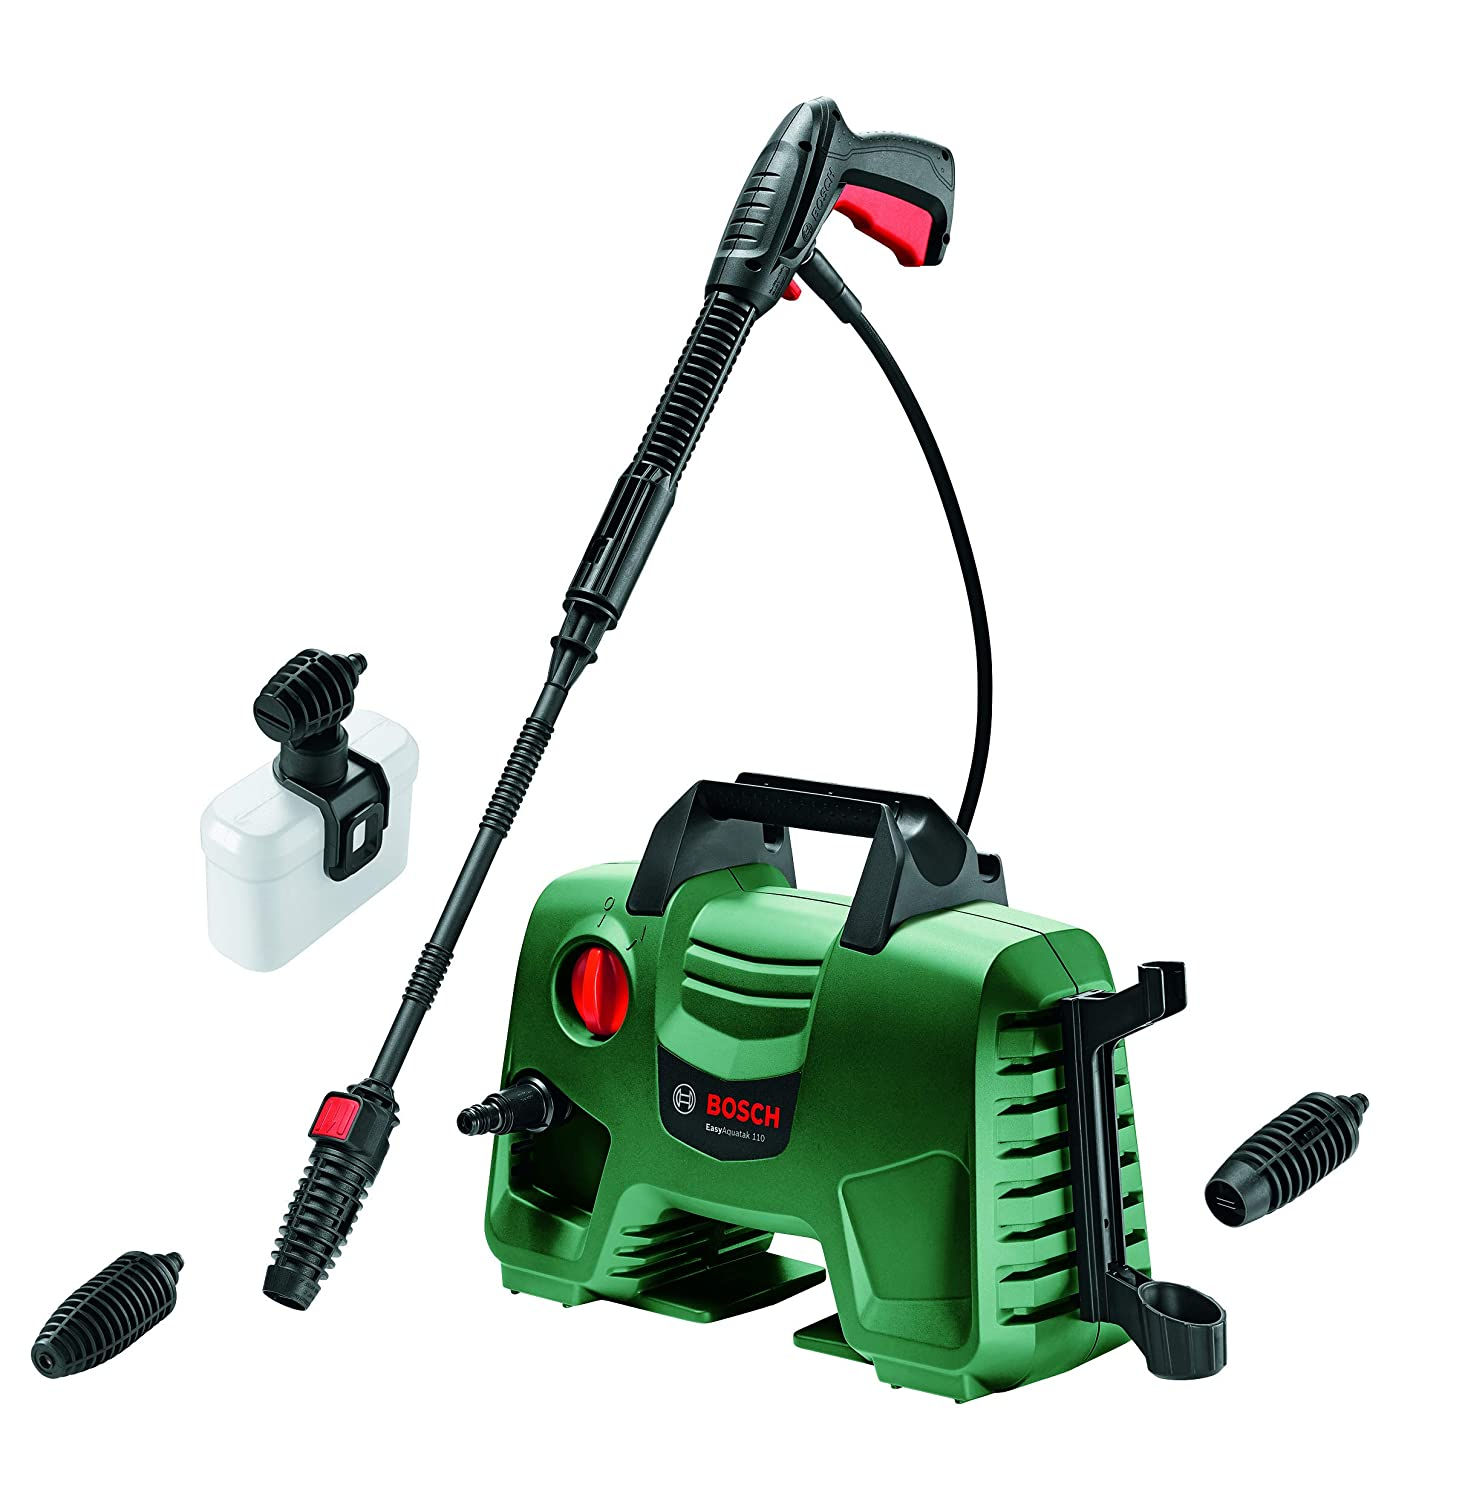 Bosch Easy Aquatak 110 1300-Watt High Pressure Washer (Green)